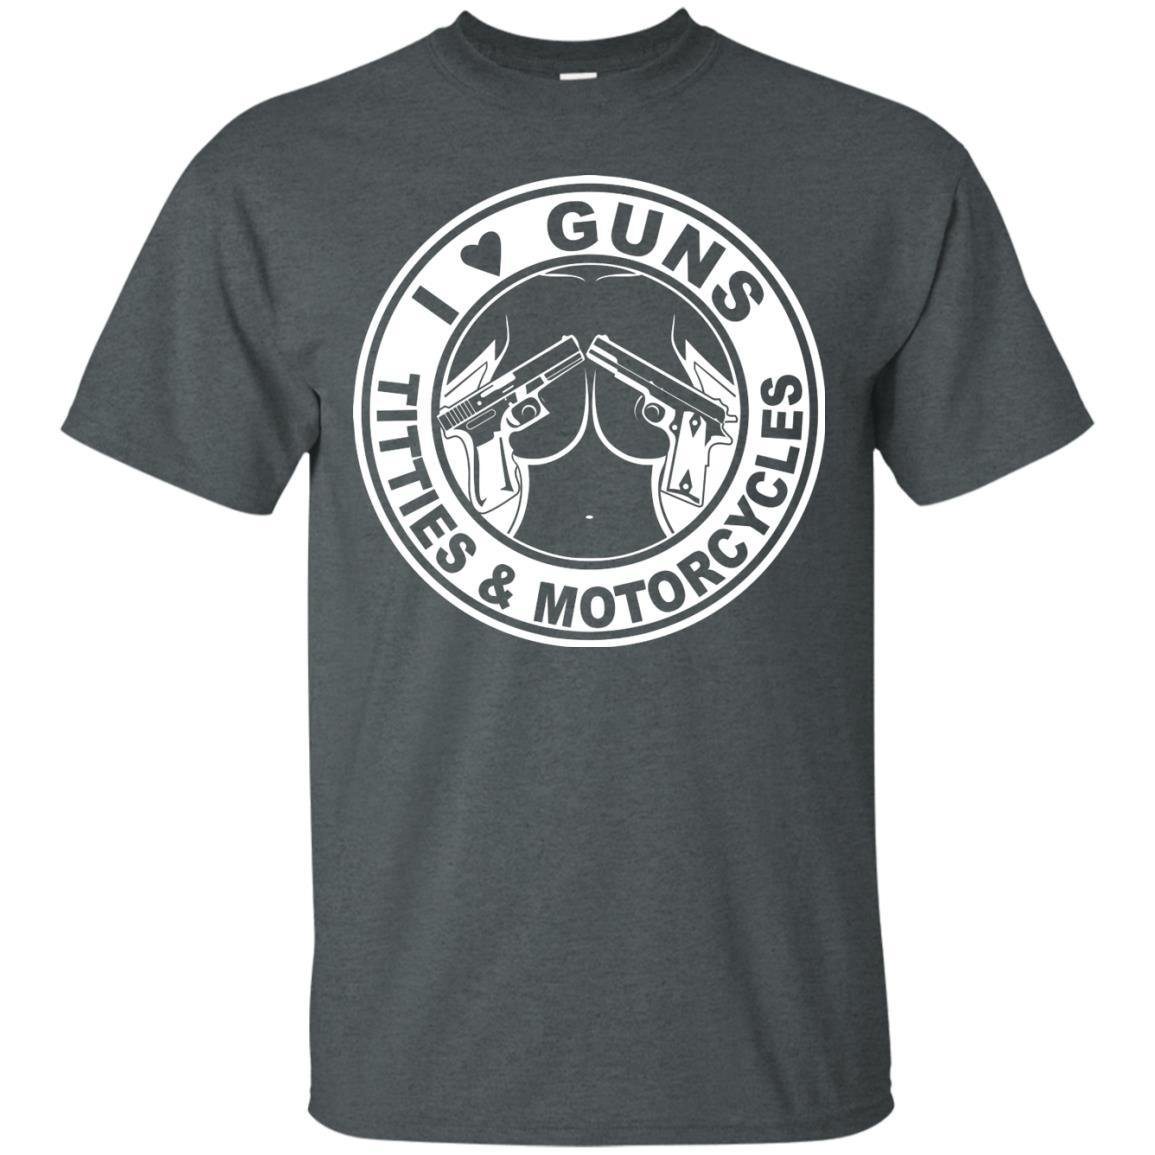 KeyVic I Love Guns Titties & Motorcycles T-Shirt